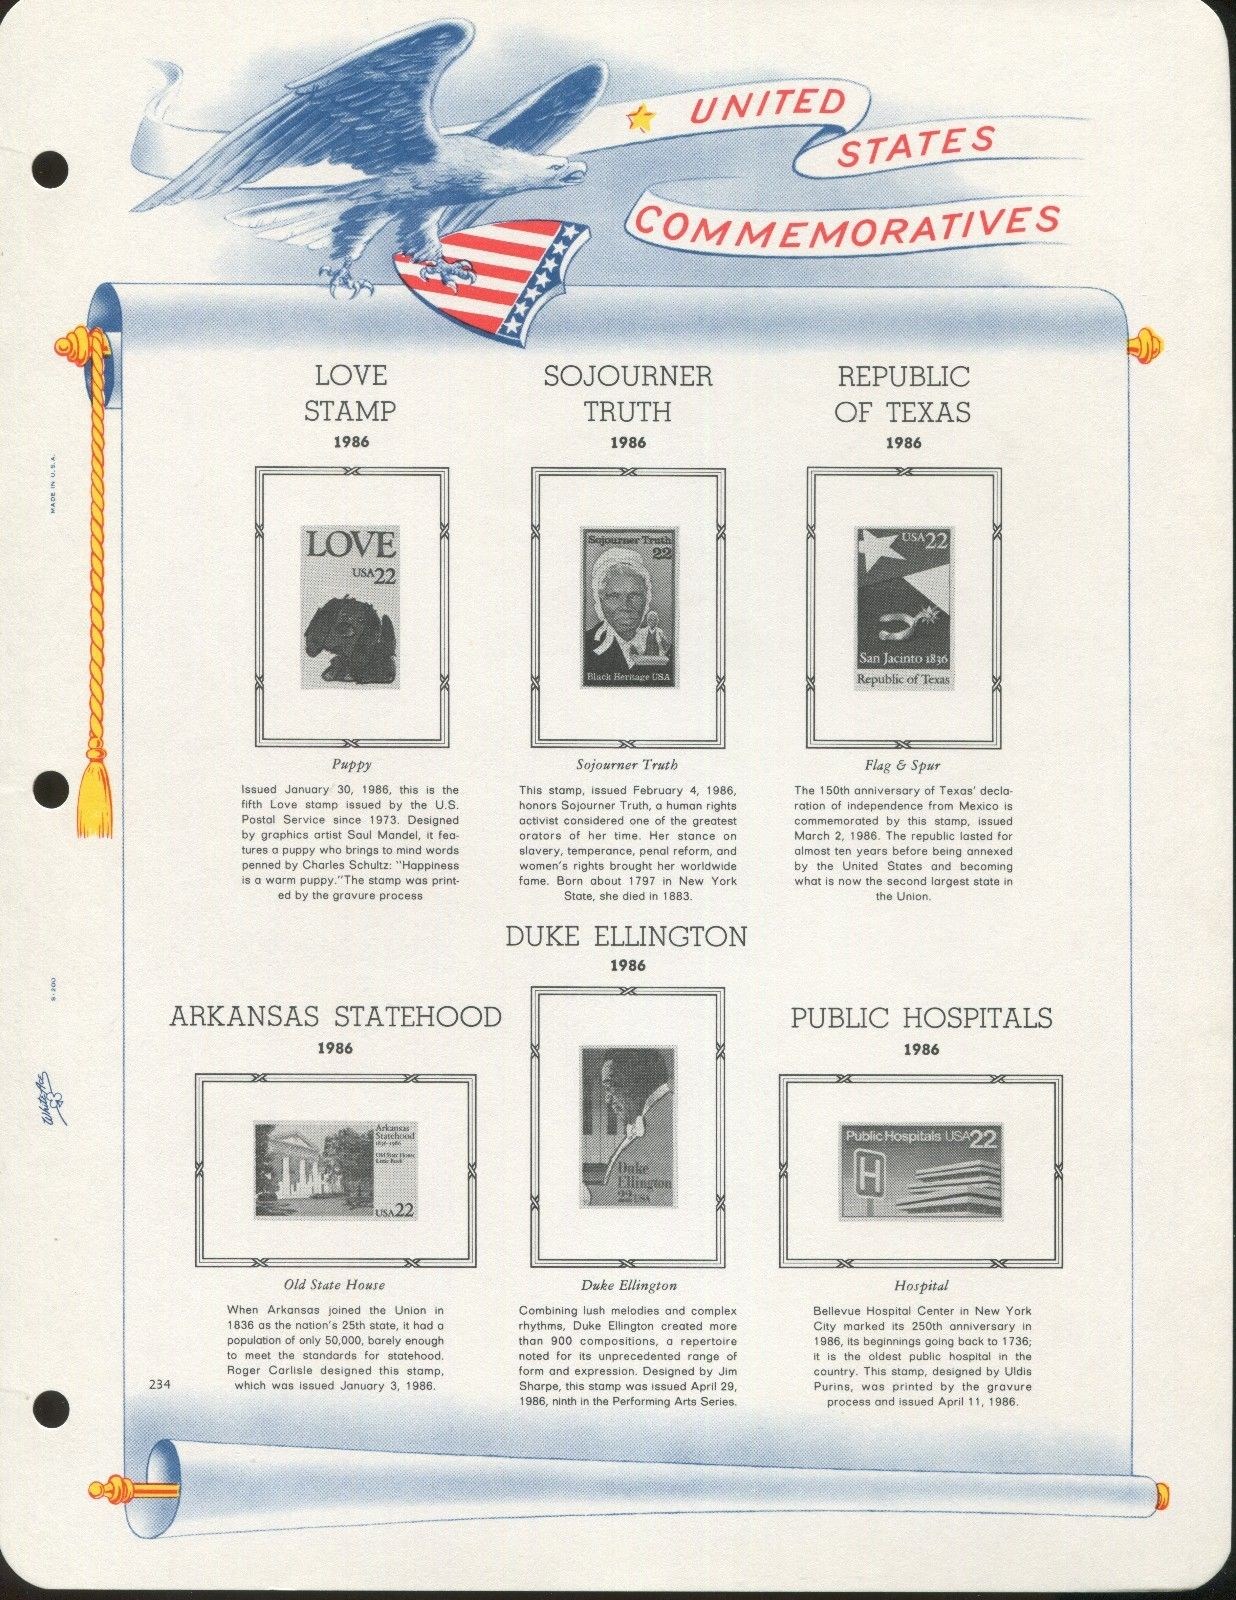 1986 White Ace United States Commemorative Historical Stamp